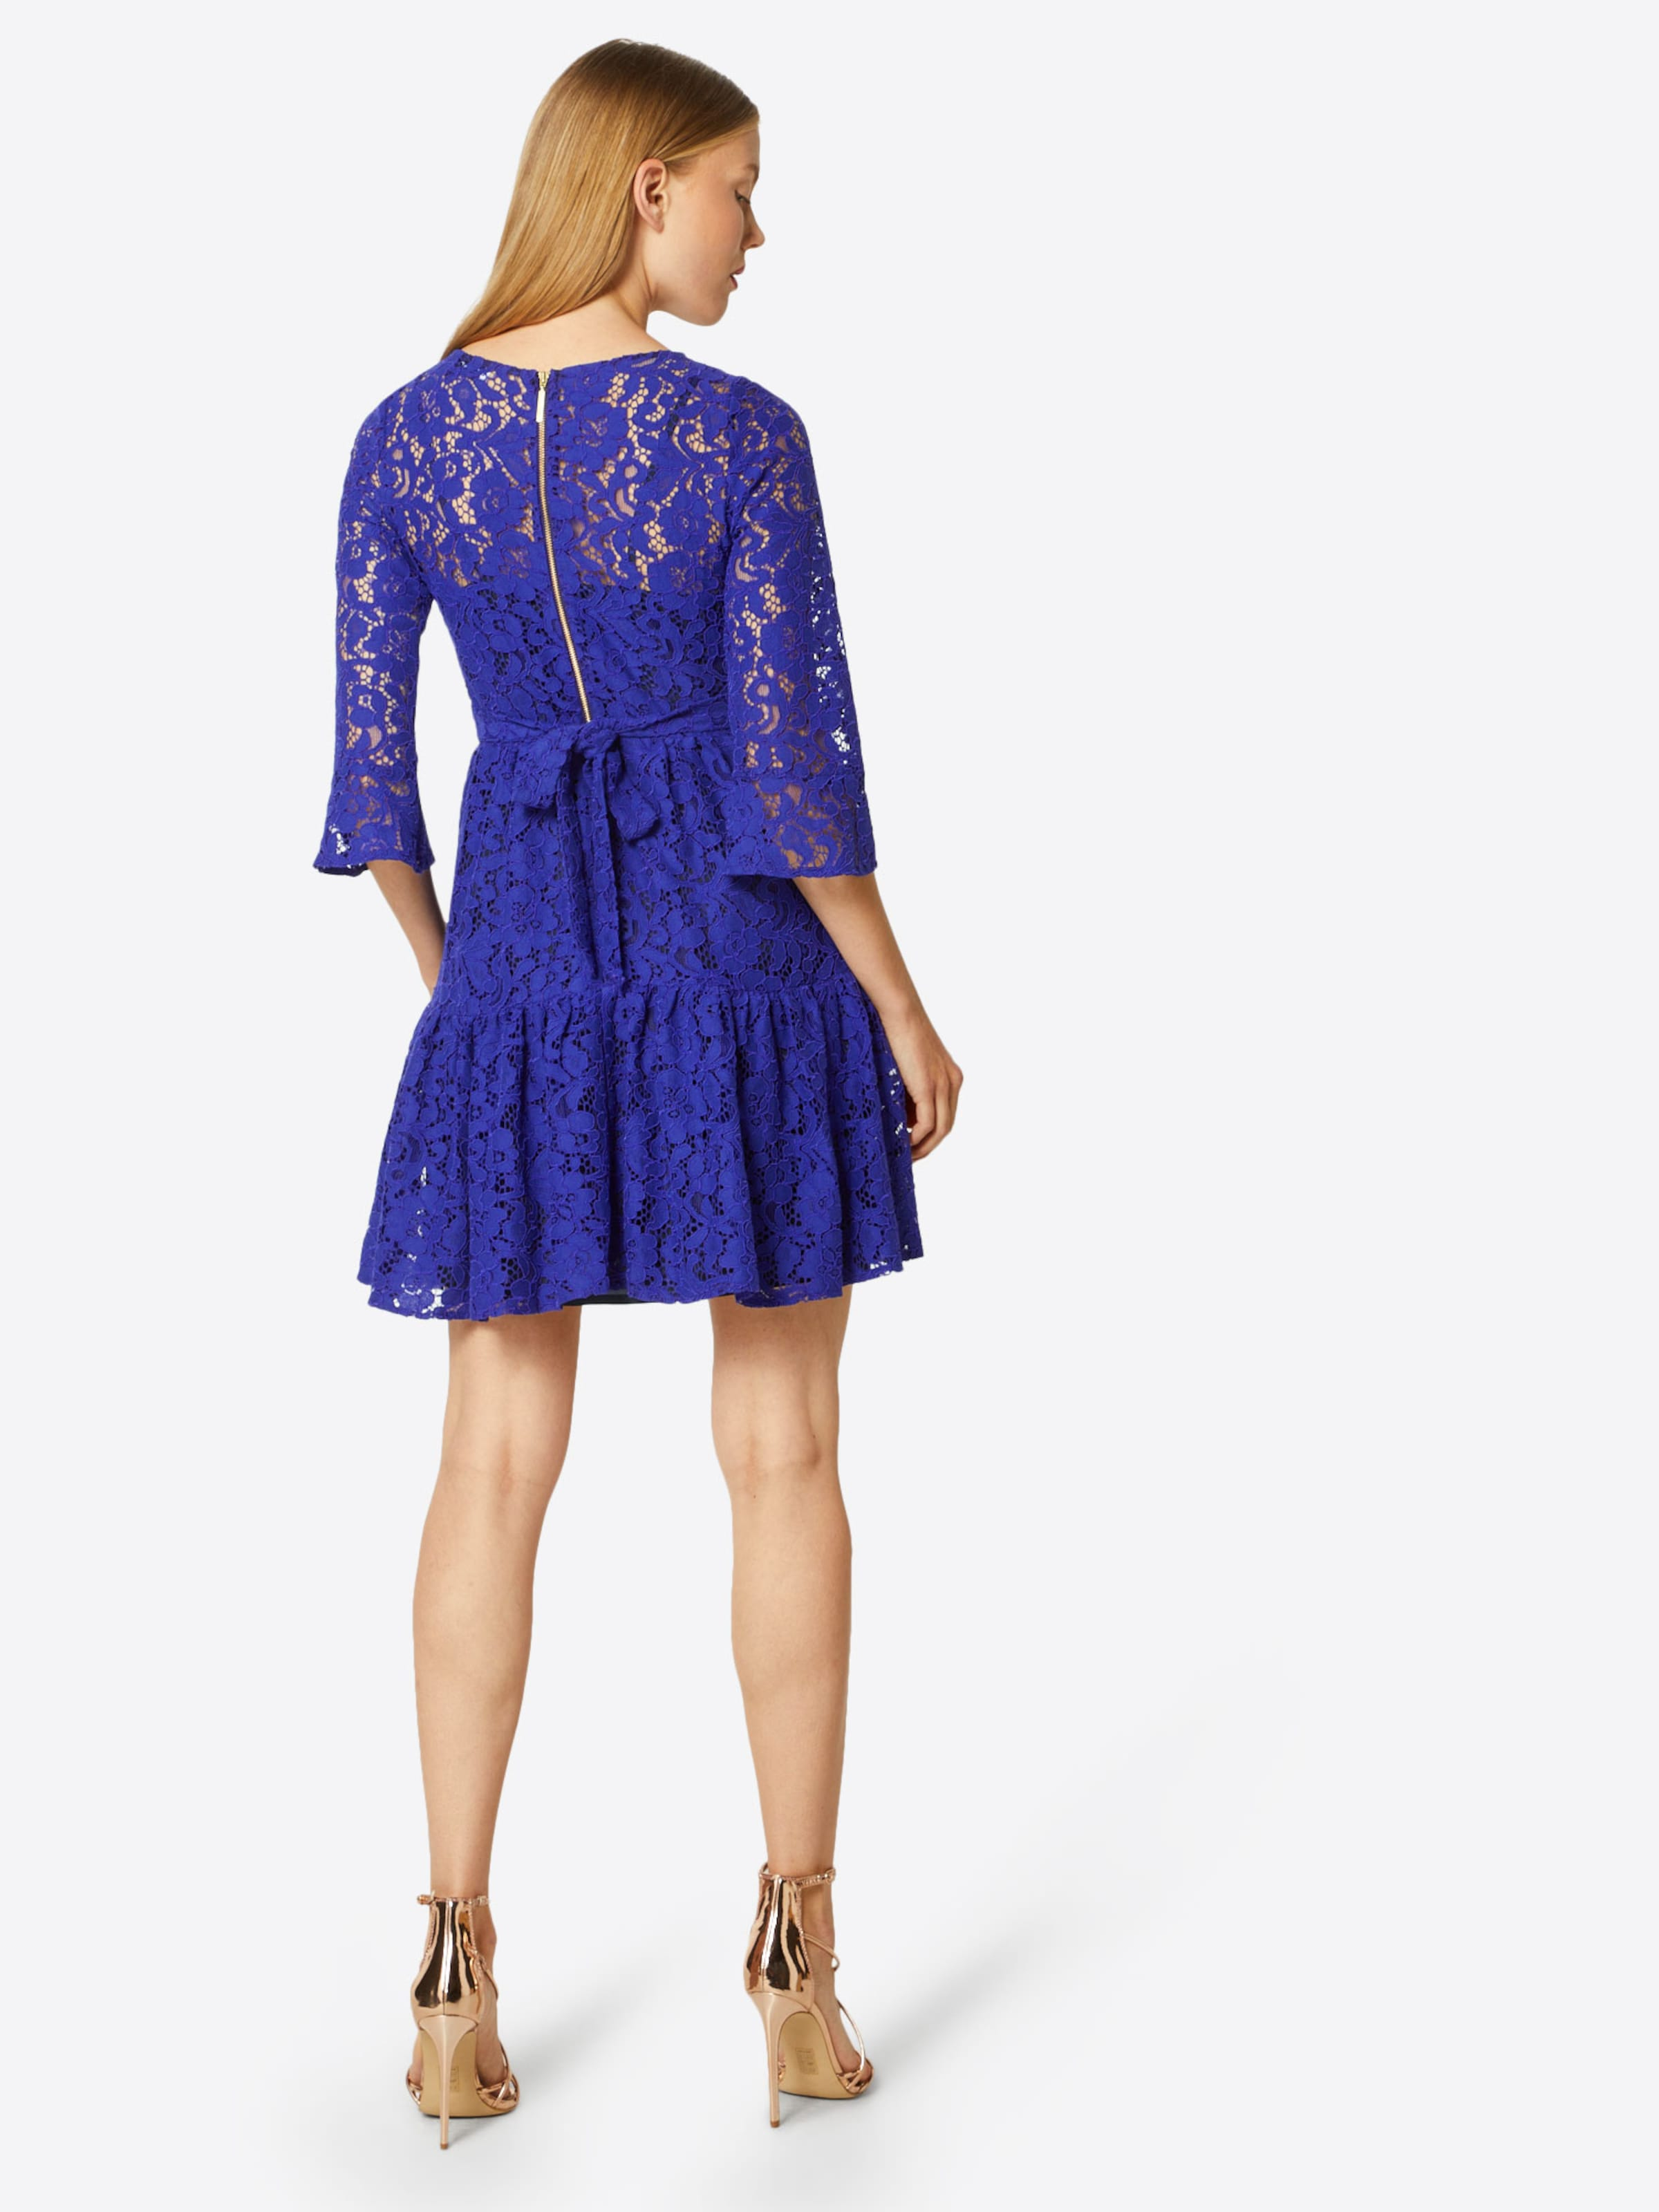 De Cocktail Orchidée Closet Robe London En SMpLzqUVG